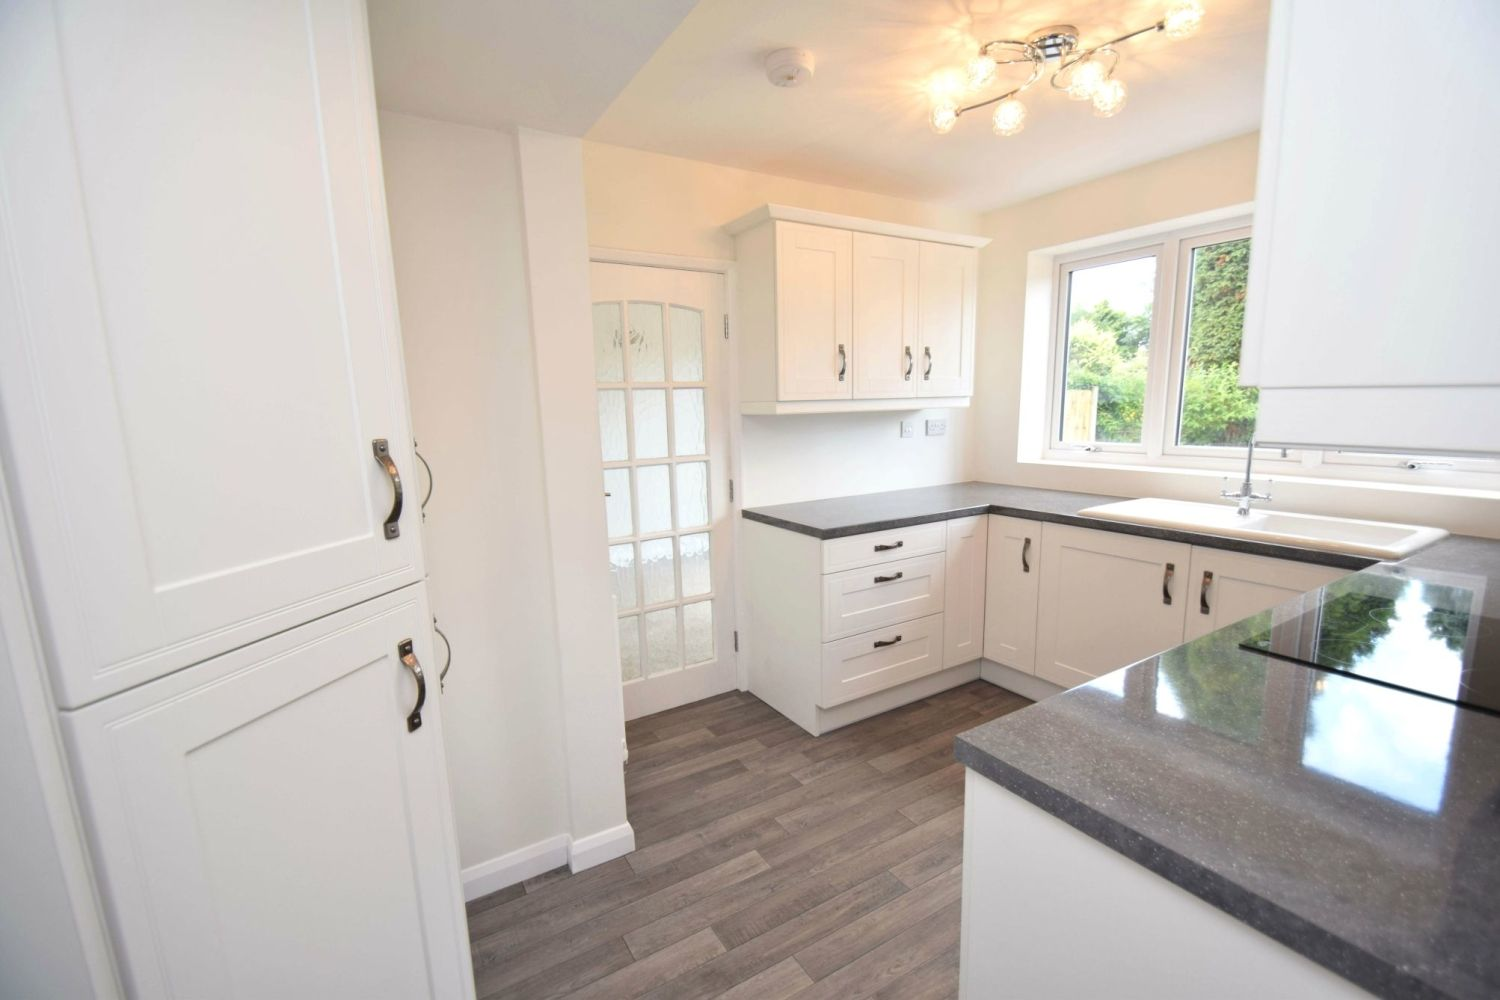 3 bed semi-detached for sale in Beachcroft Road, Wall Heath  - Property Image 7